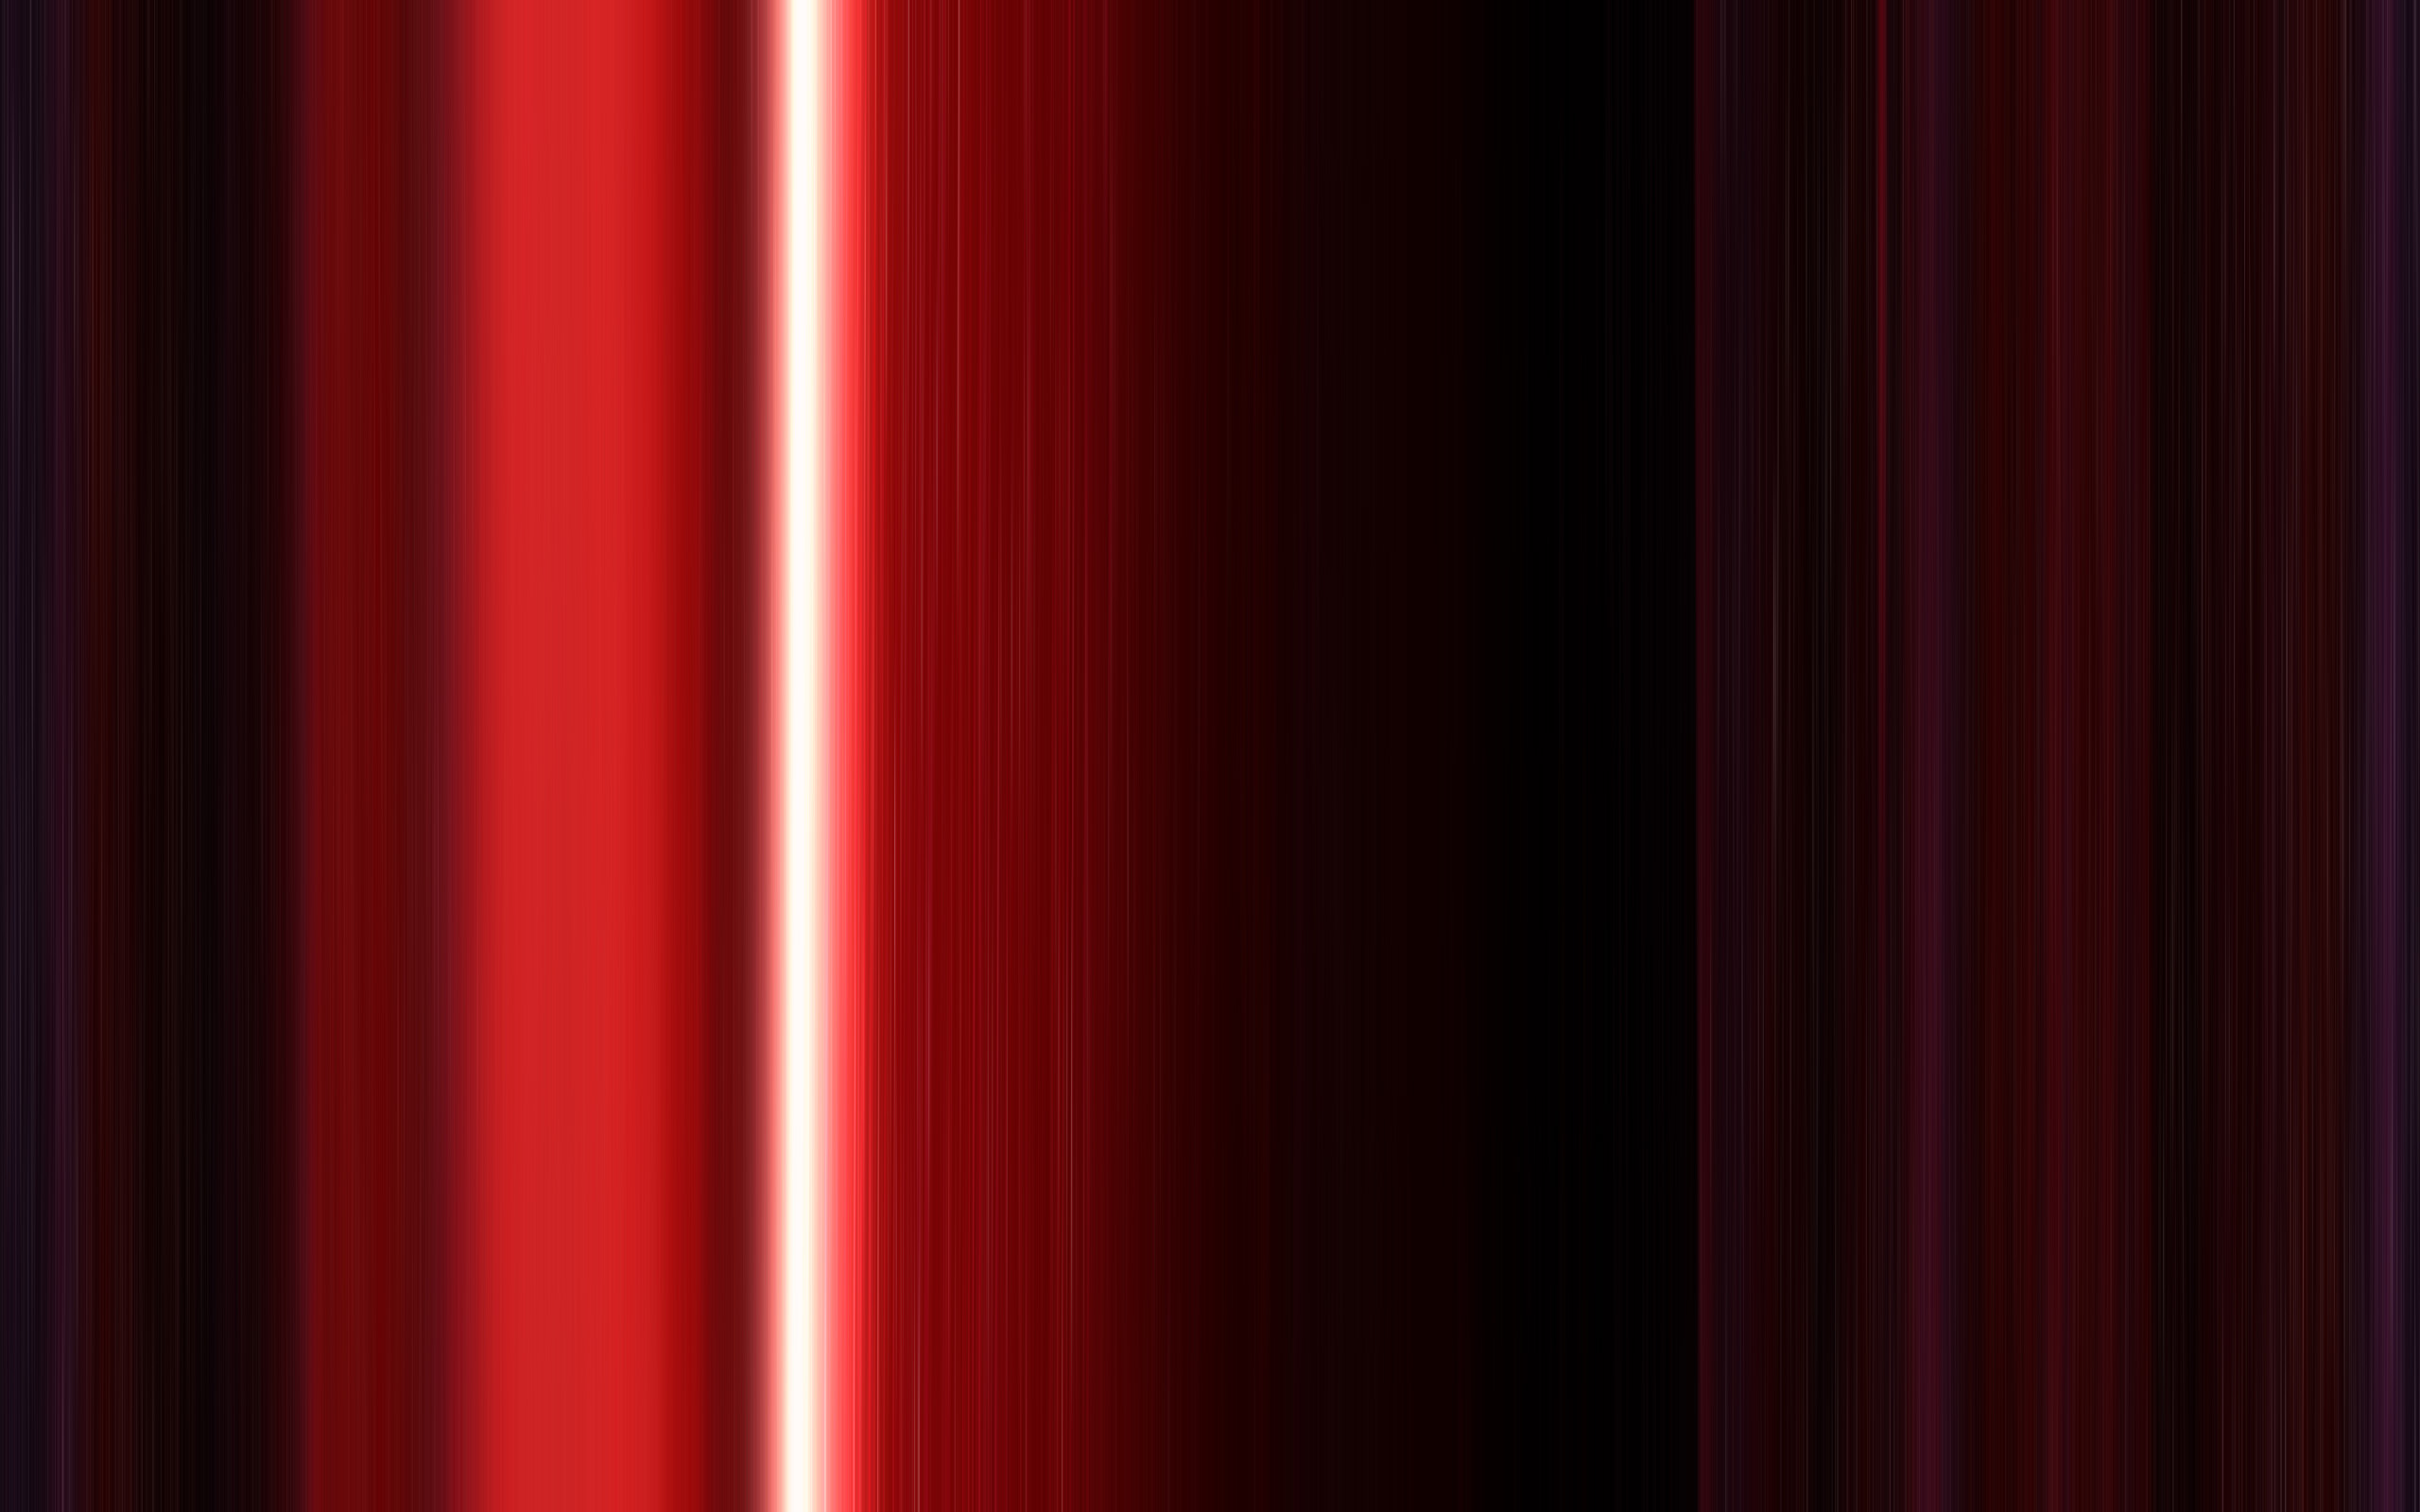 Wallpaper 88 Cool line Red and Black Wallpapers 2560x1600